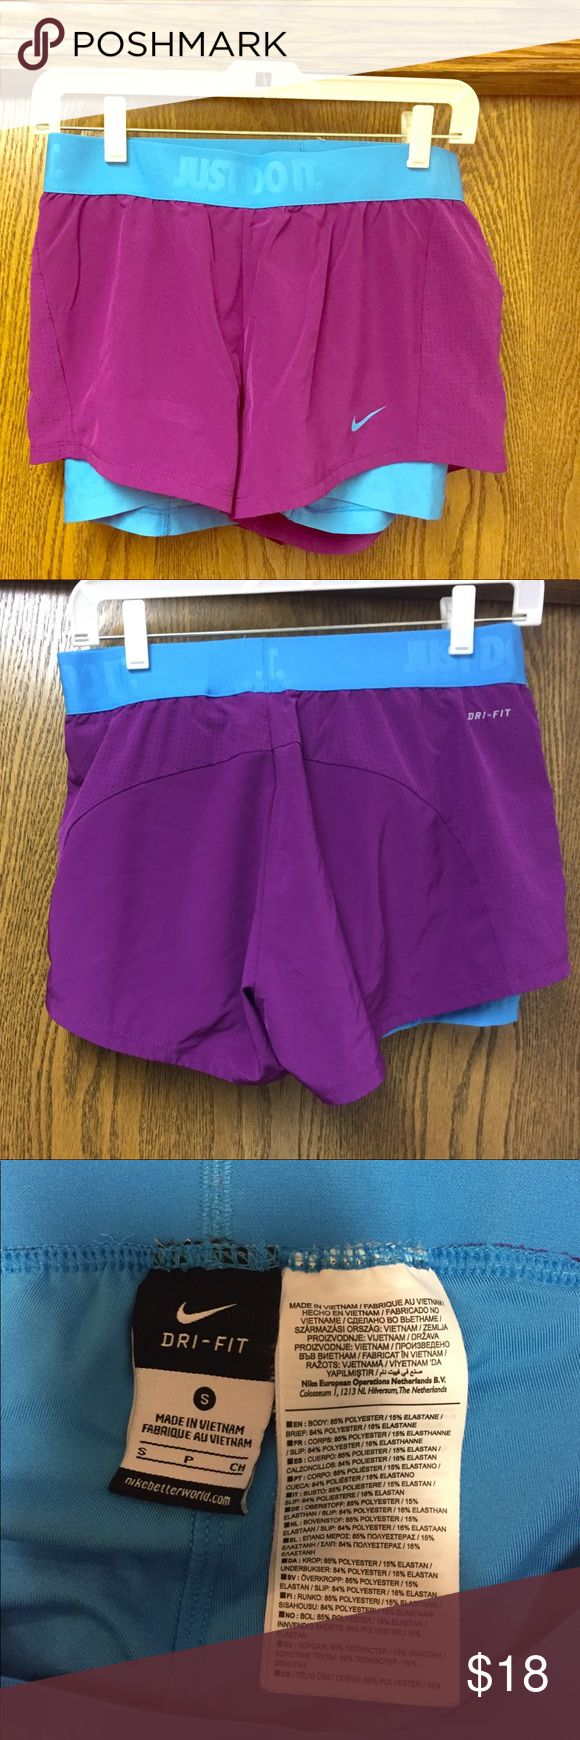 Women's Nike Running Shorts with Spandex Purple shorts with blue spandex and waistband accents, worn only a few times! Nike Shorts